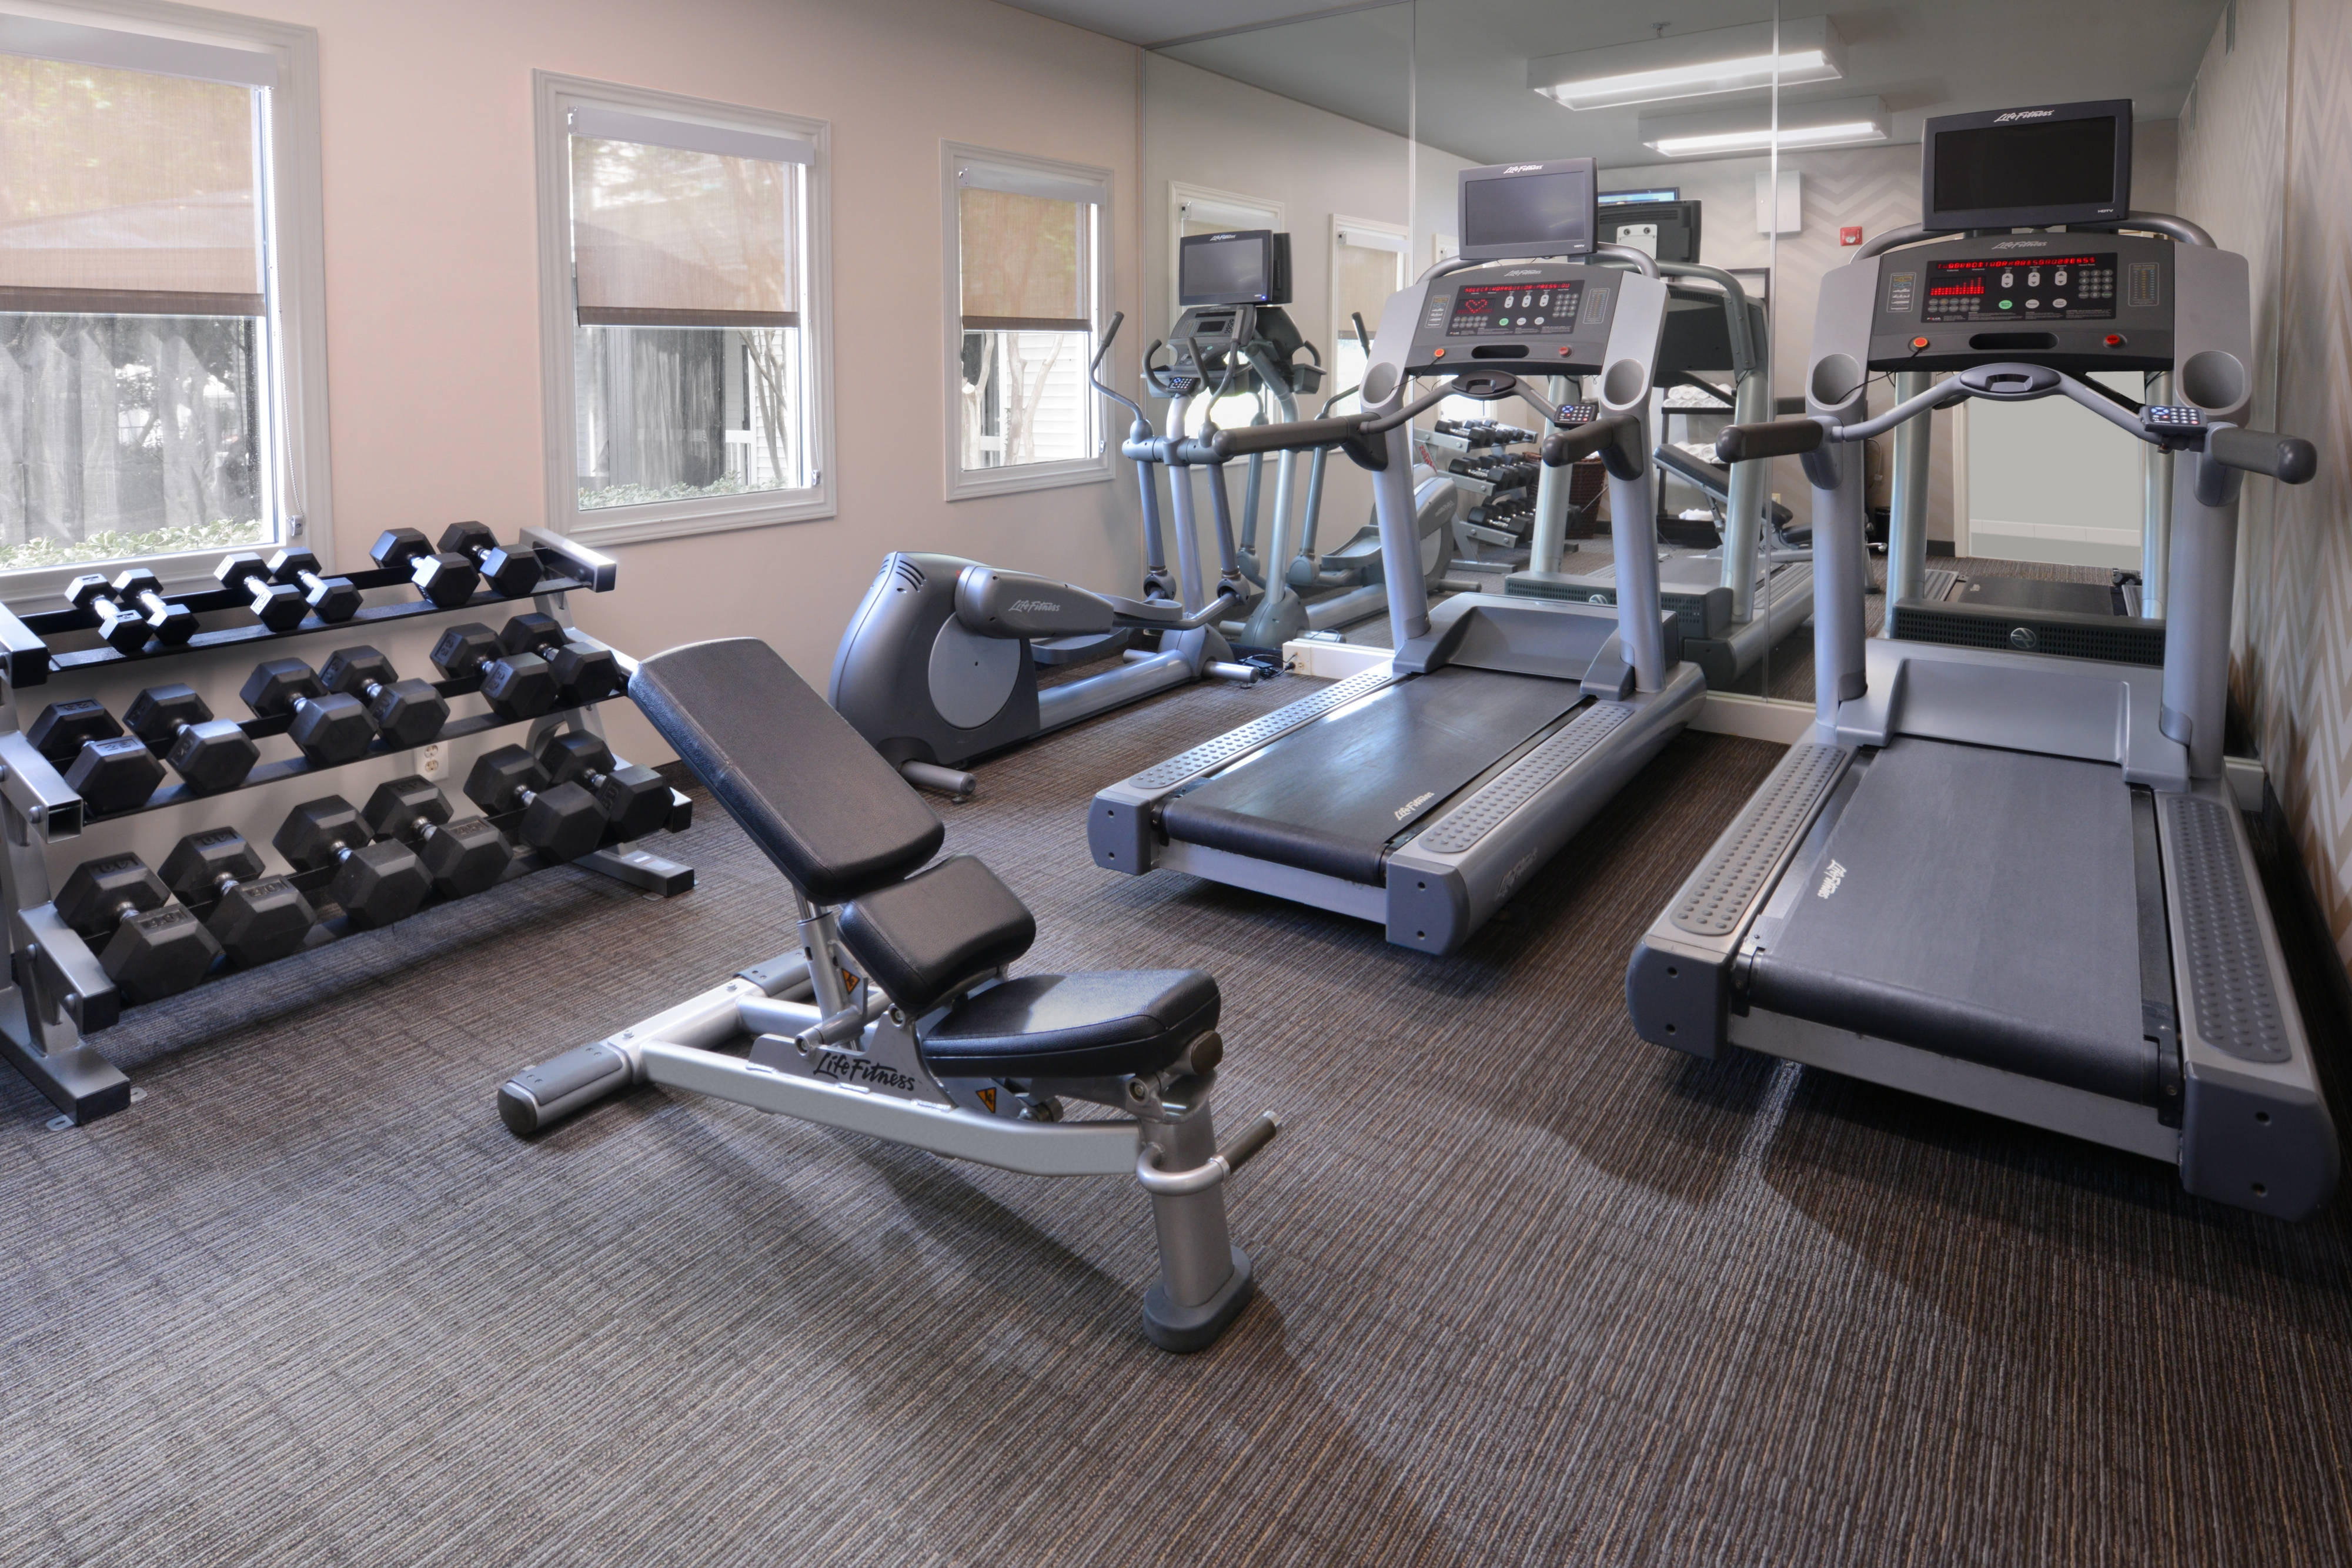 Fitness Center at Residence Inn Dallas Central Expressway